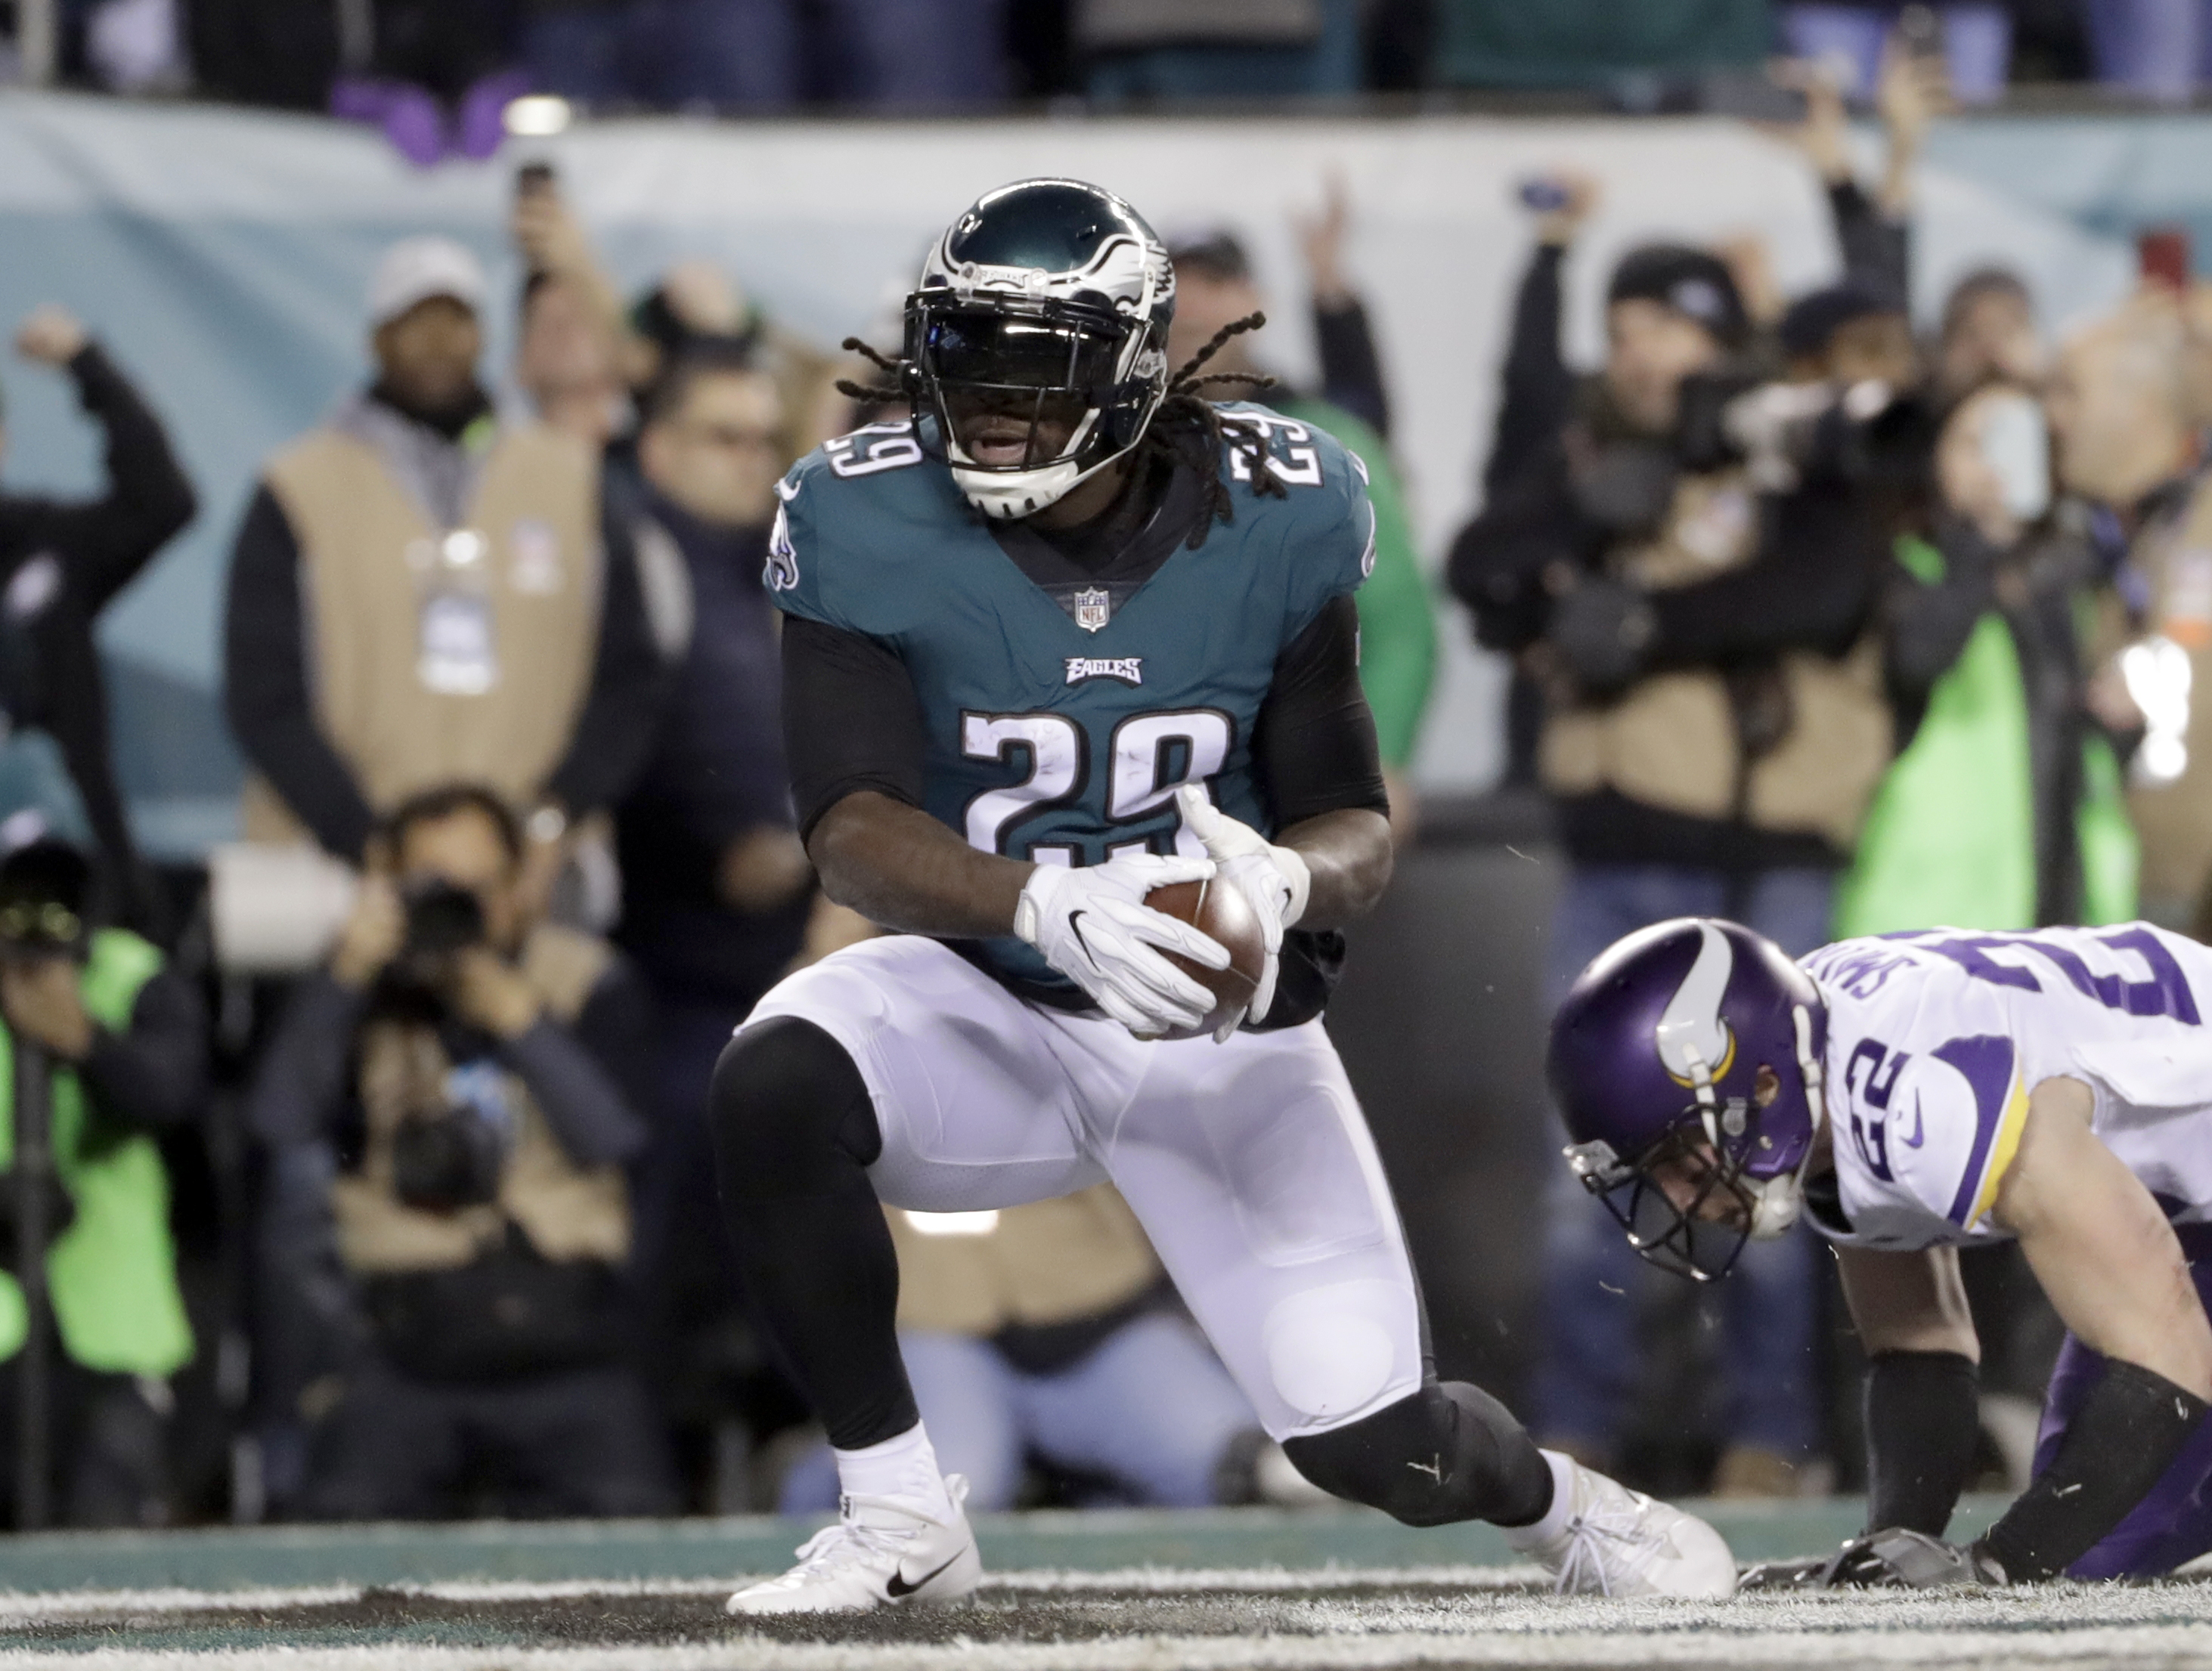 <div class='meta'><div class='origin-logo' data-origin='AP'></div><span class='caption-text' data-credit='AP Photo/Matt Slocum'>Philadelphia Eagles' LeGarrette Blount runs for a touchdown during the first half of the NFL football NFC championship game against the Minnesota Vikings Sunday, Jan. 21, 2018.</span></div>